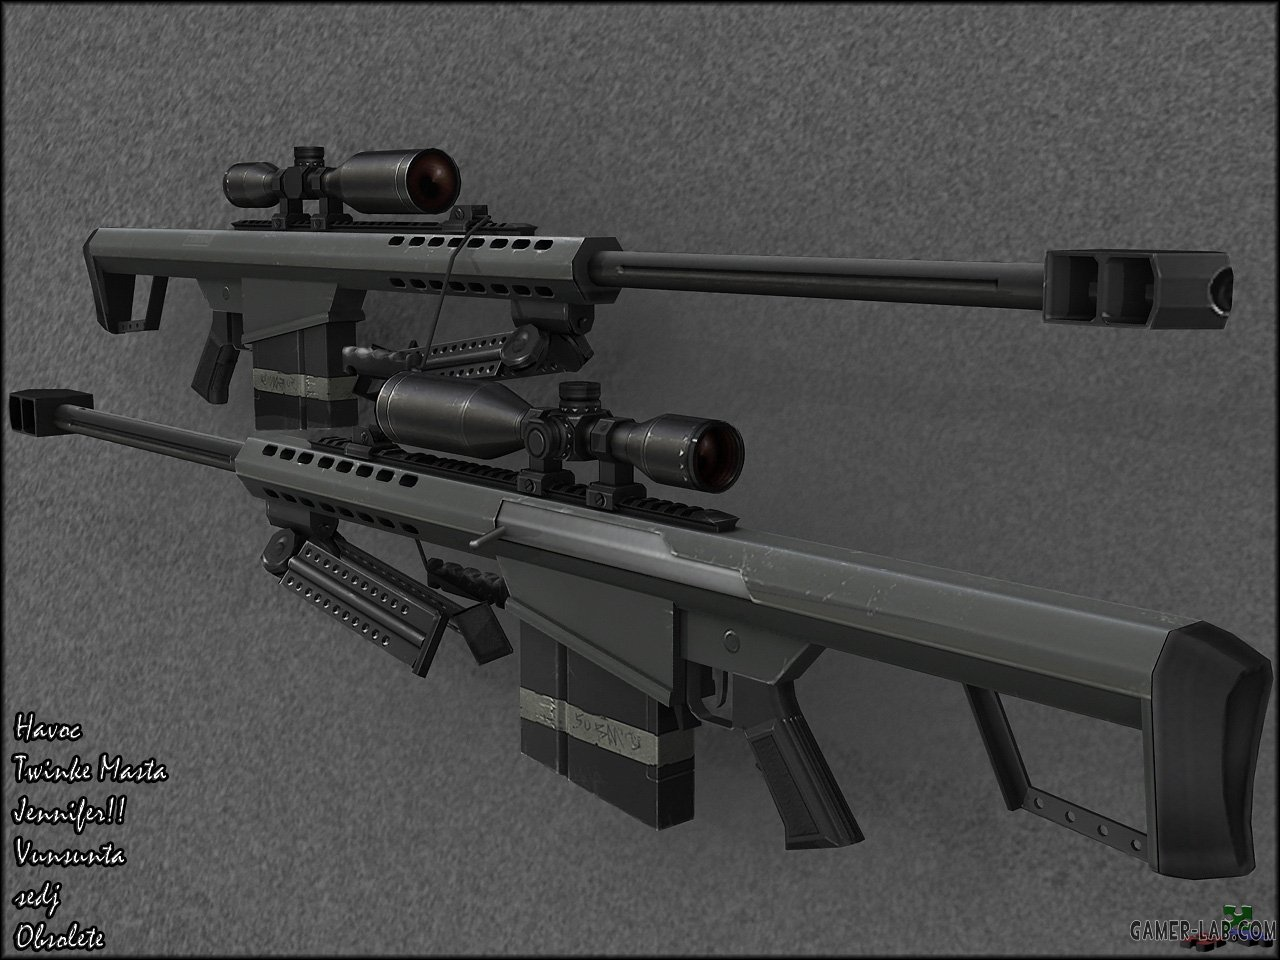 Barrett Turbo